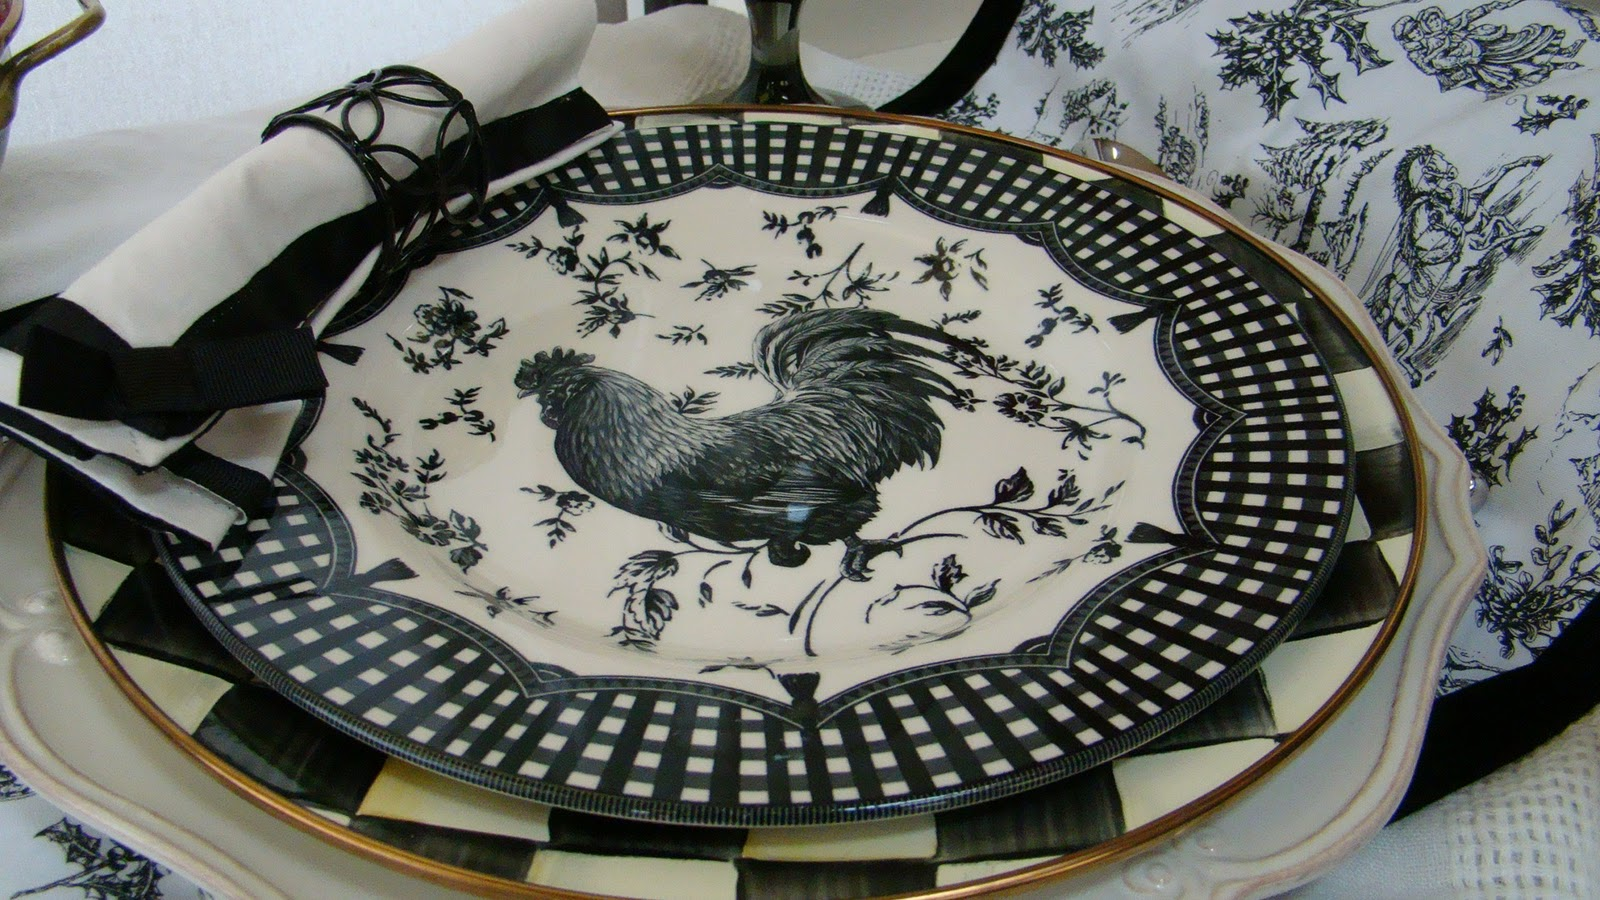 It tells me what is popular and these rooster plates with MacKenzie-Childs chargers are very popular. The plates have a wonderful scalloped design with ... & I Found More Rooster Plates - Mountain Breaths